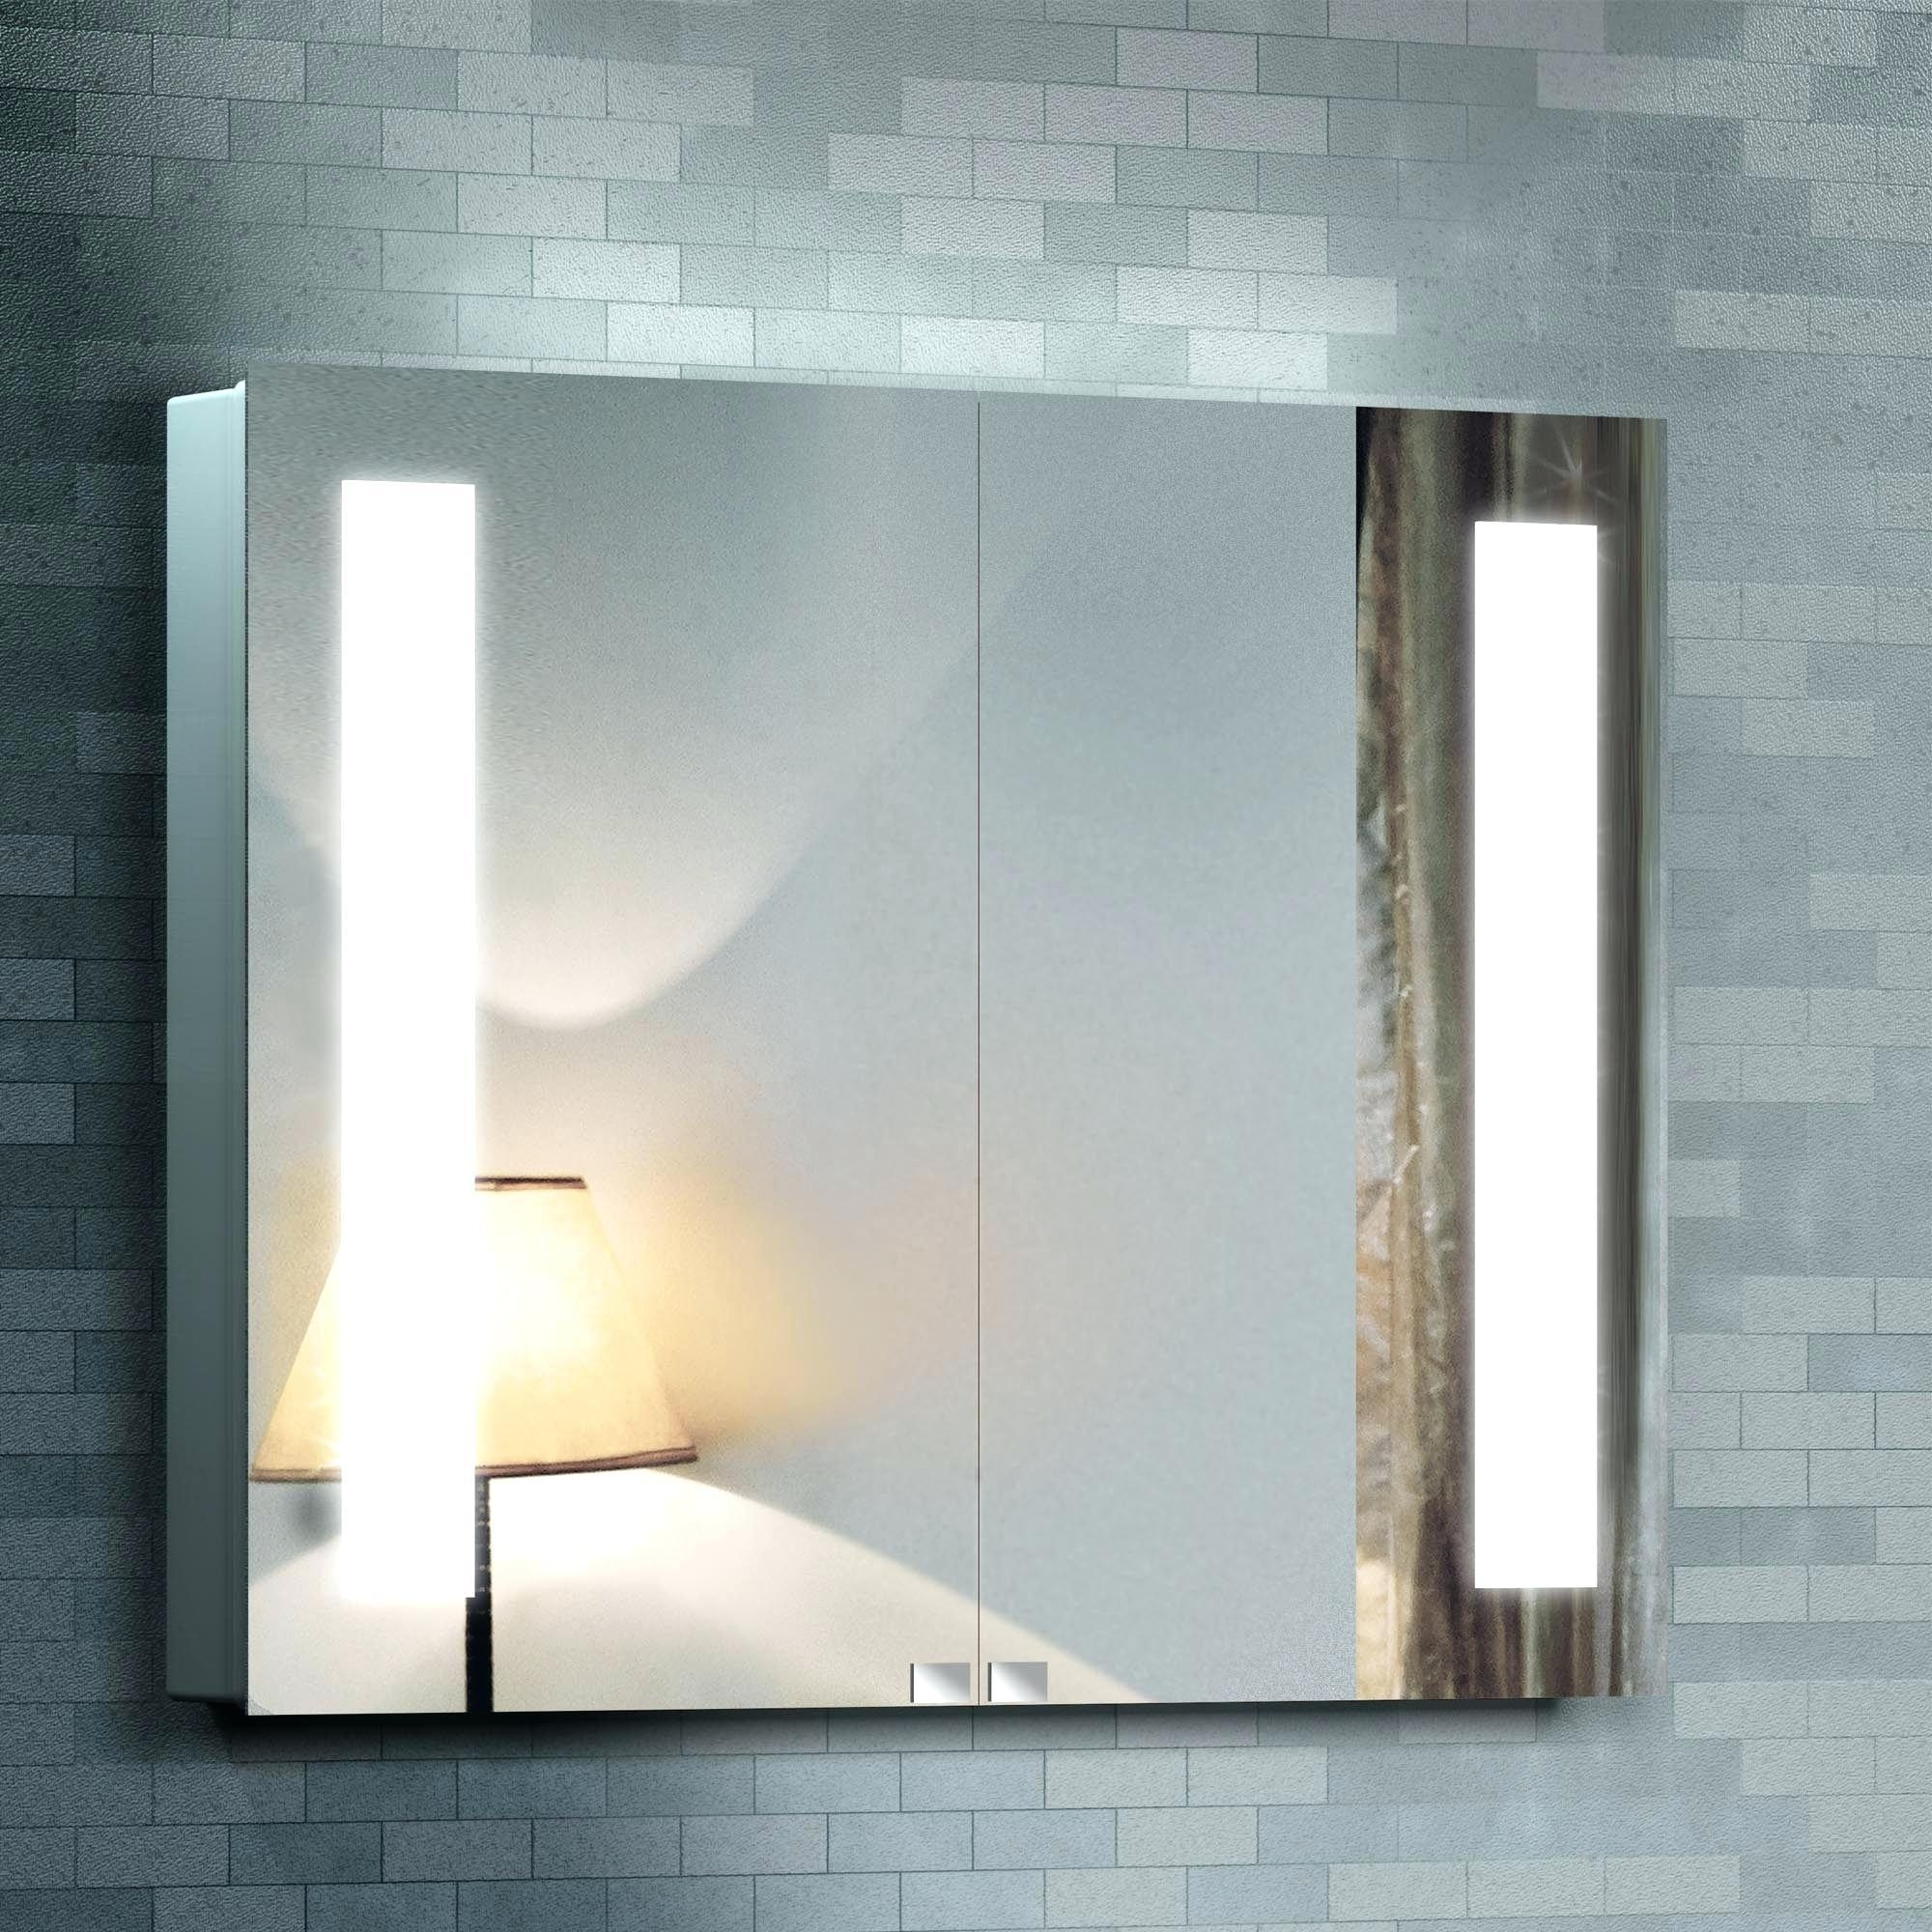 Bathroom : Unusual Ikea Storjorm Mirror Review Vanity Mirror With With Vanity Mirrors With Built In Lights (Image 2 of 20)